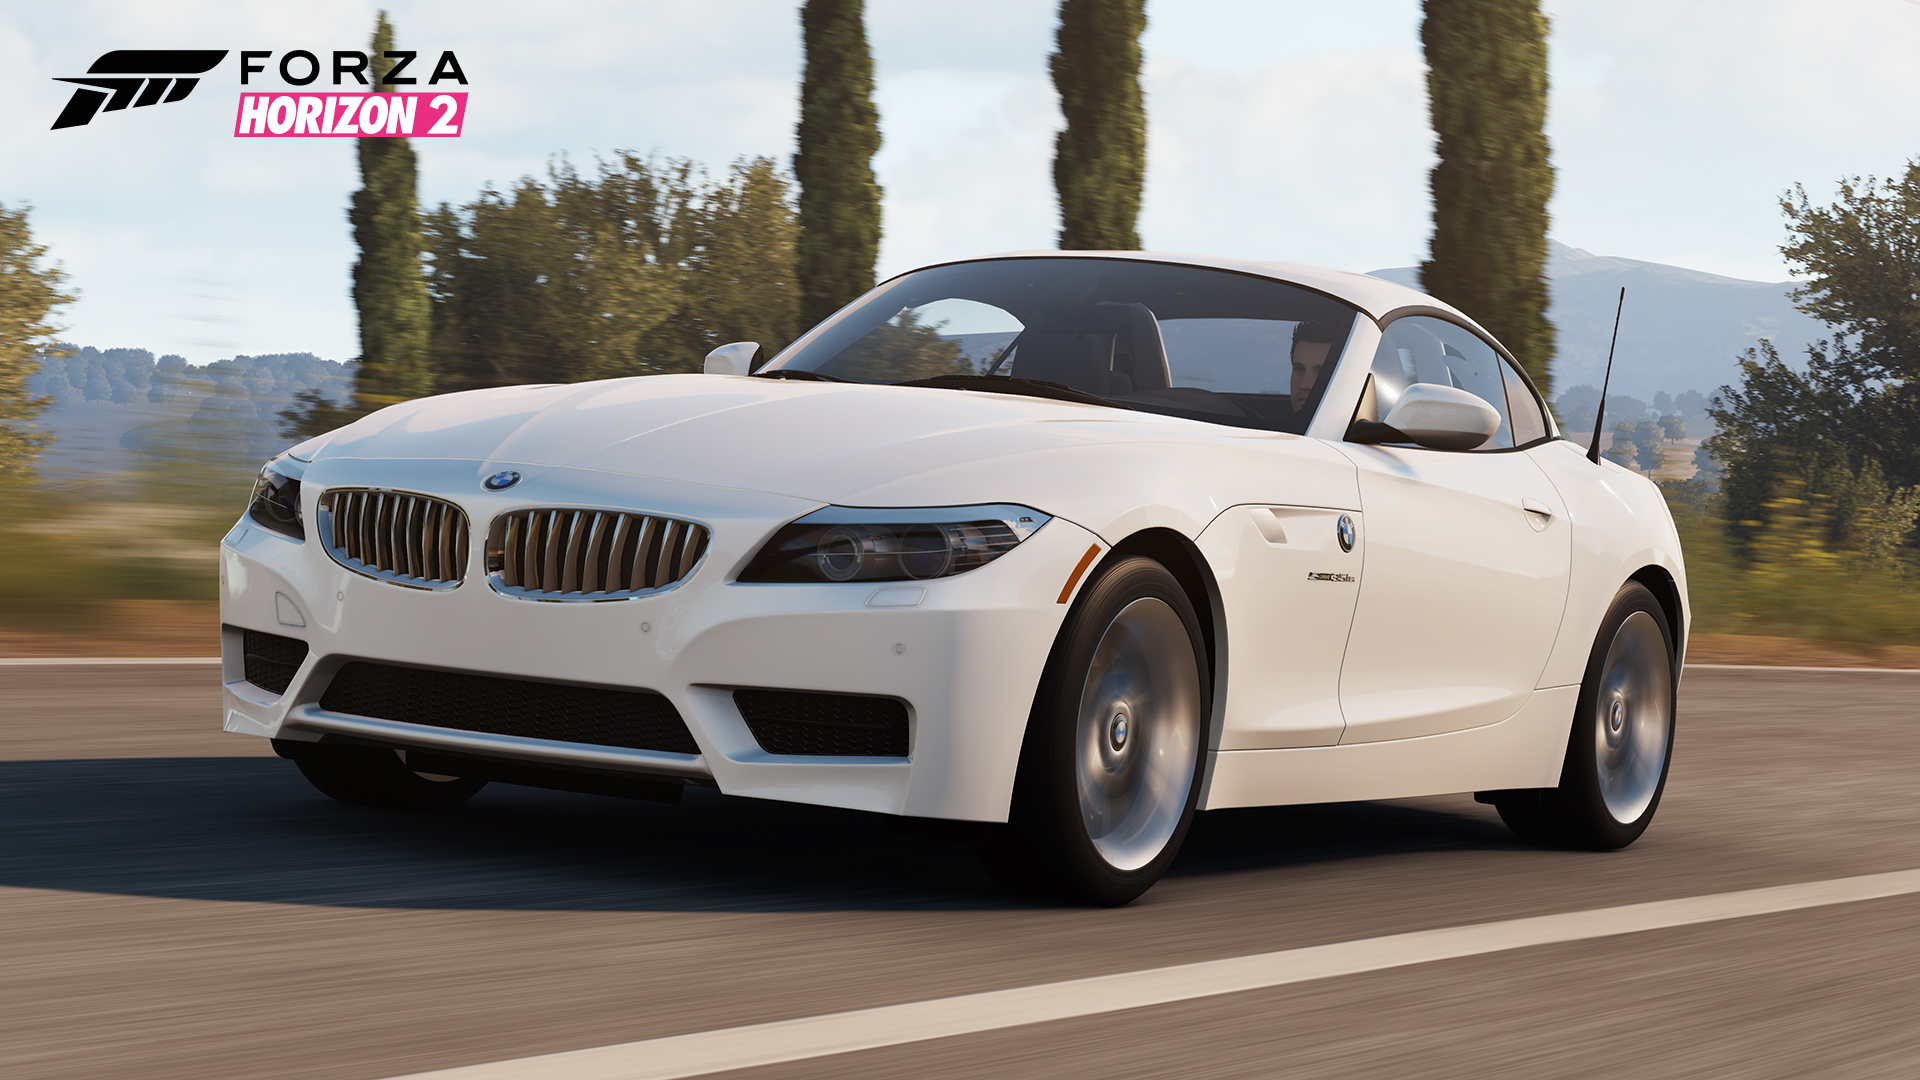 Forza Horizon 2 (Xbox One) Review | High-Def Digest